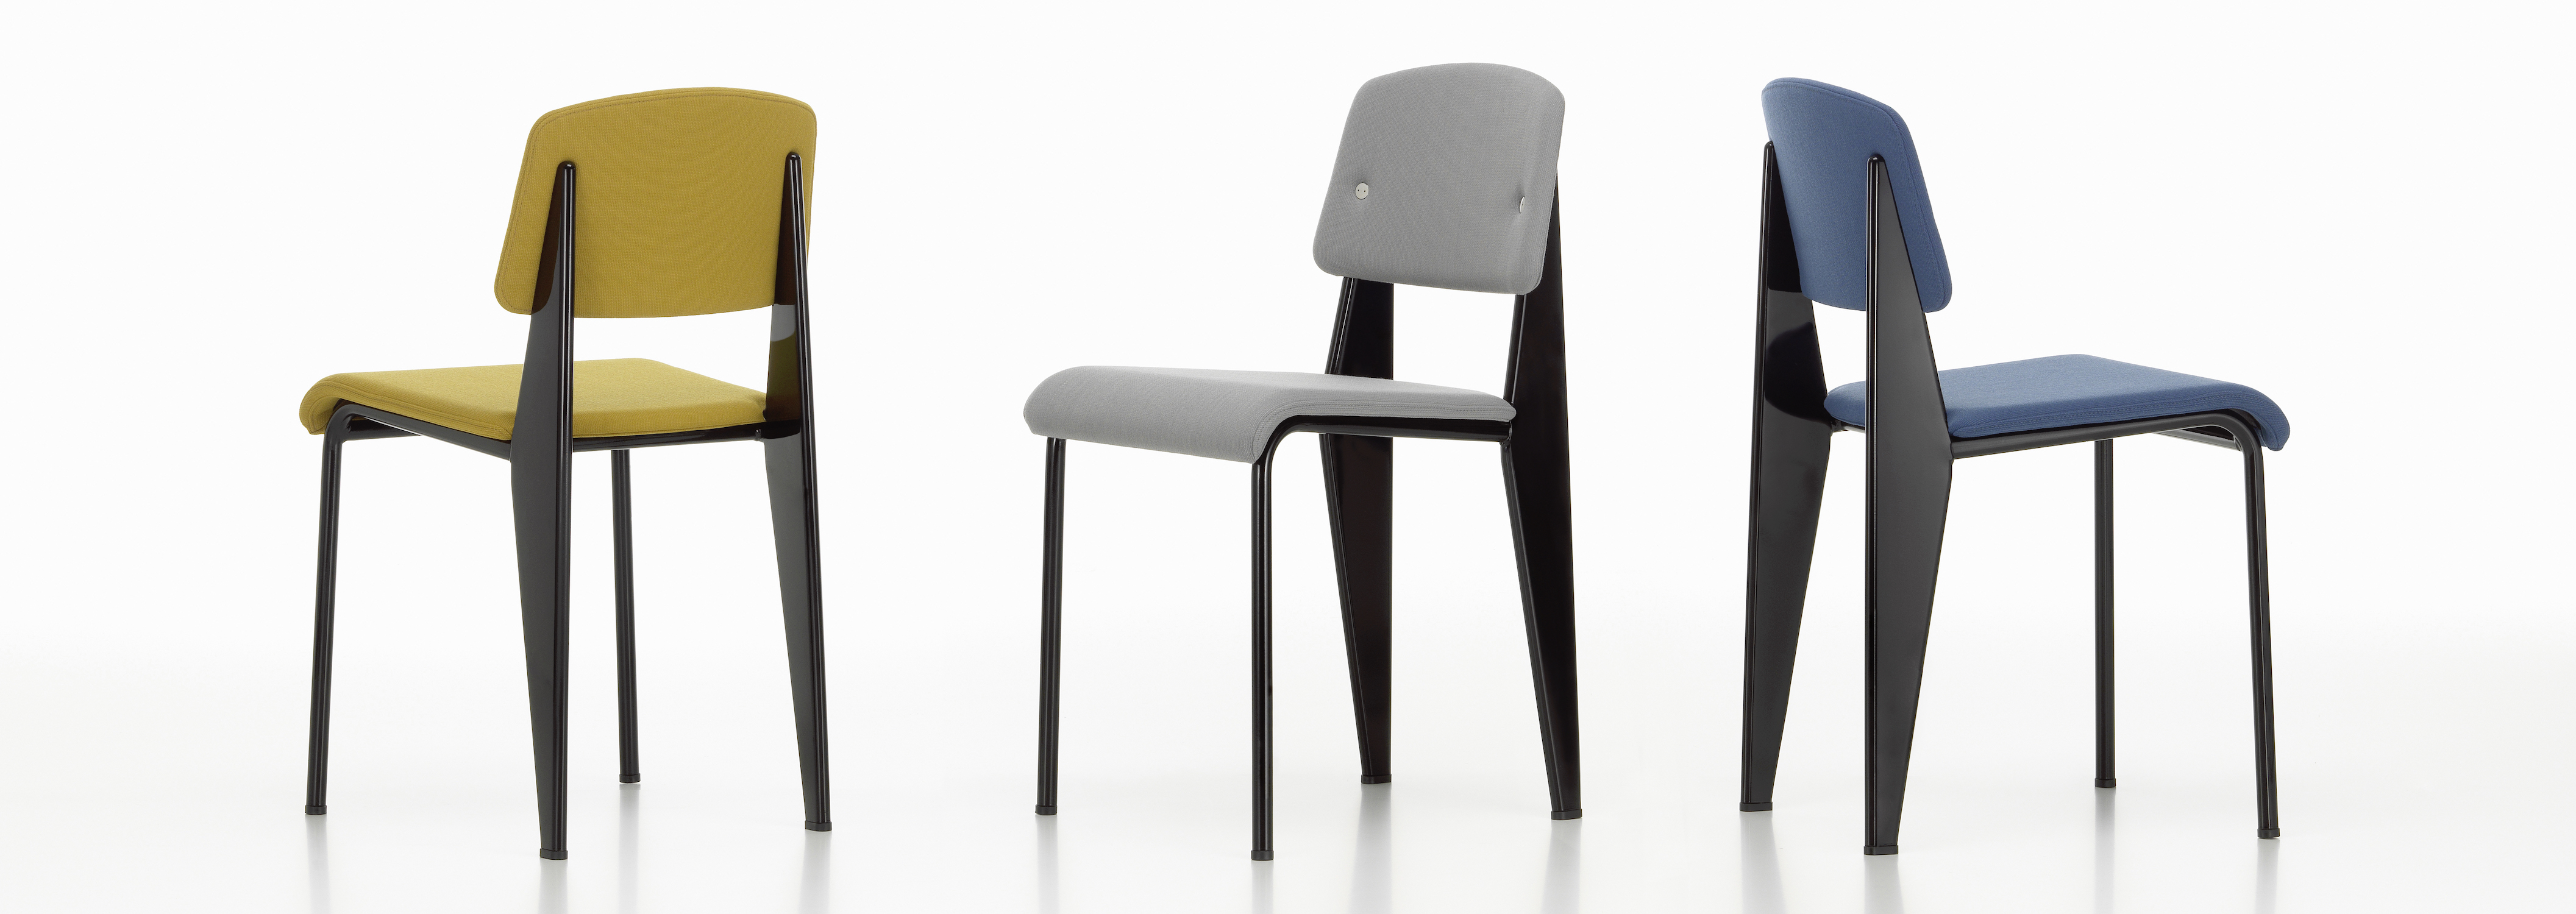 Vitra standard sr chair jean prouv - Chaise standard jean prouve ...